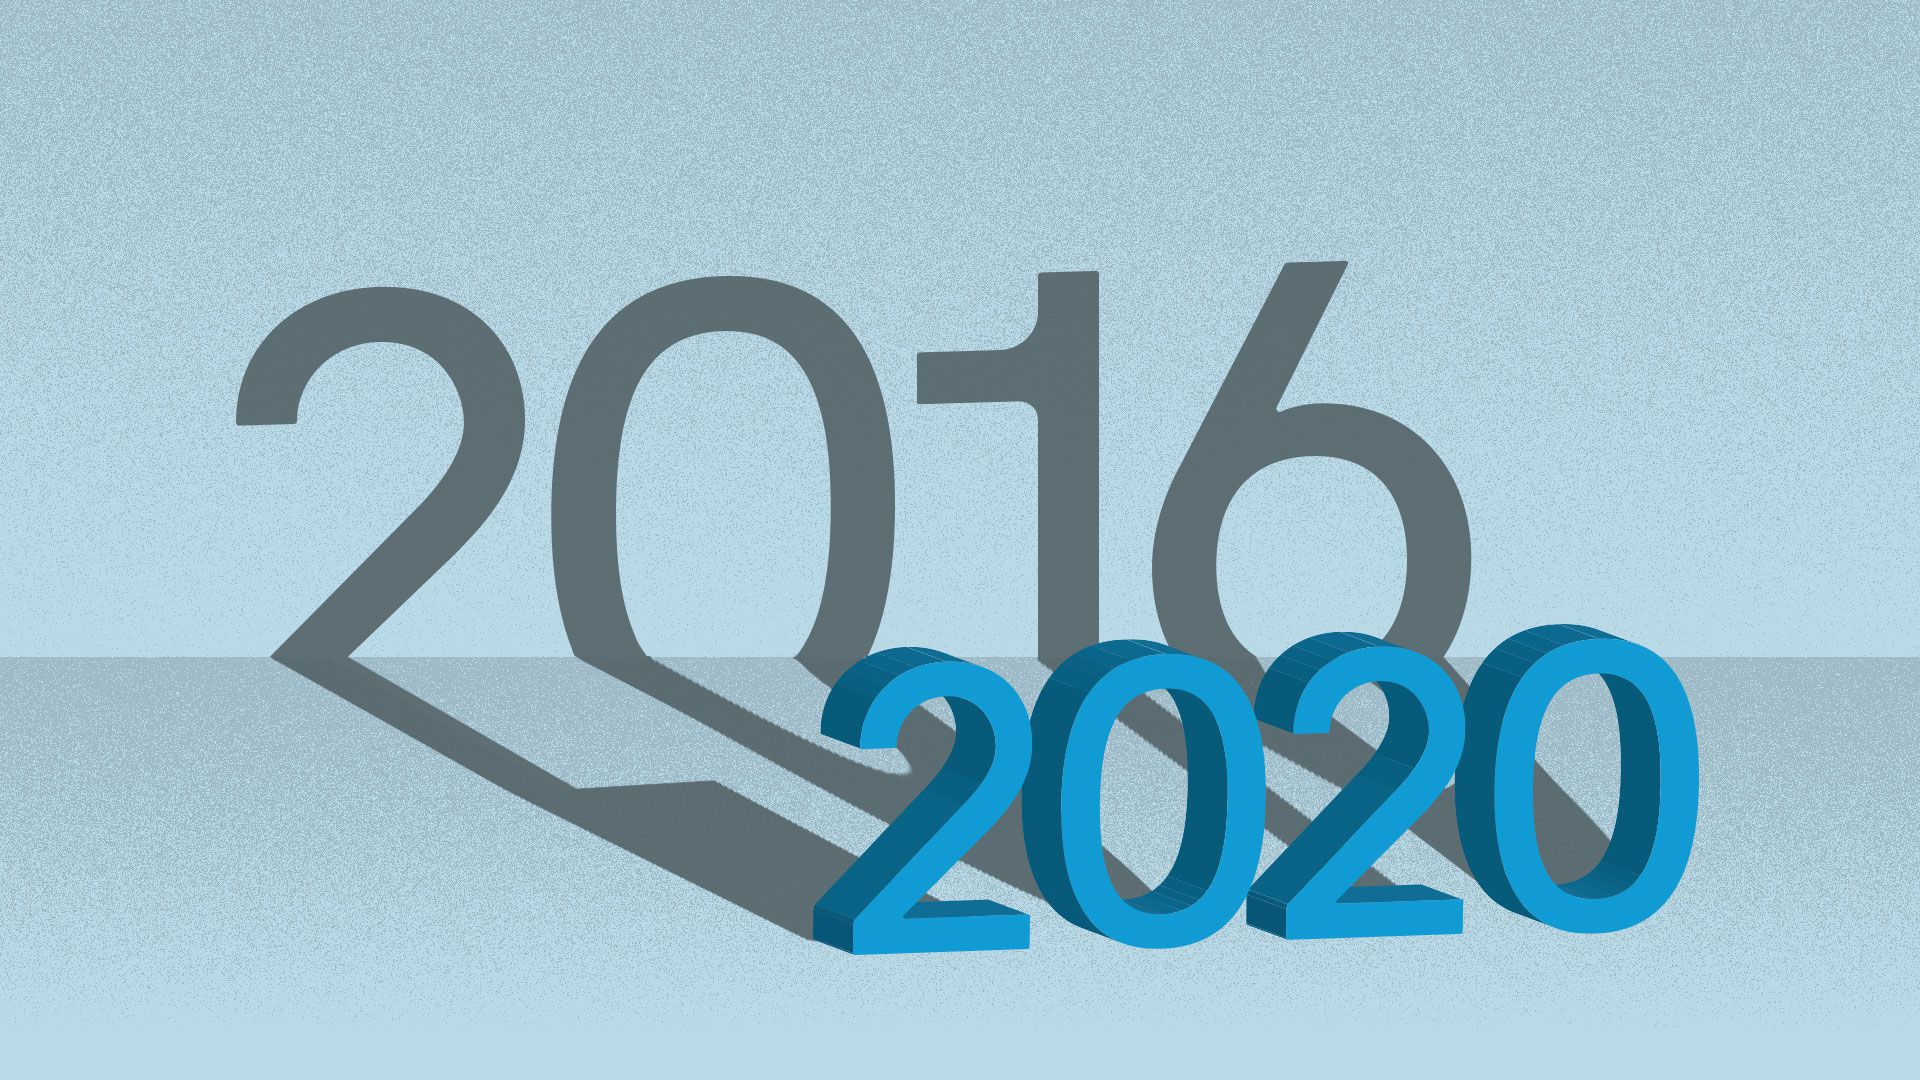 Illustration of 2020 in large letters casting a shadow that reads 2016.